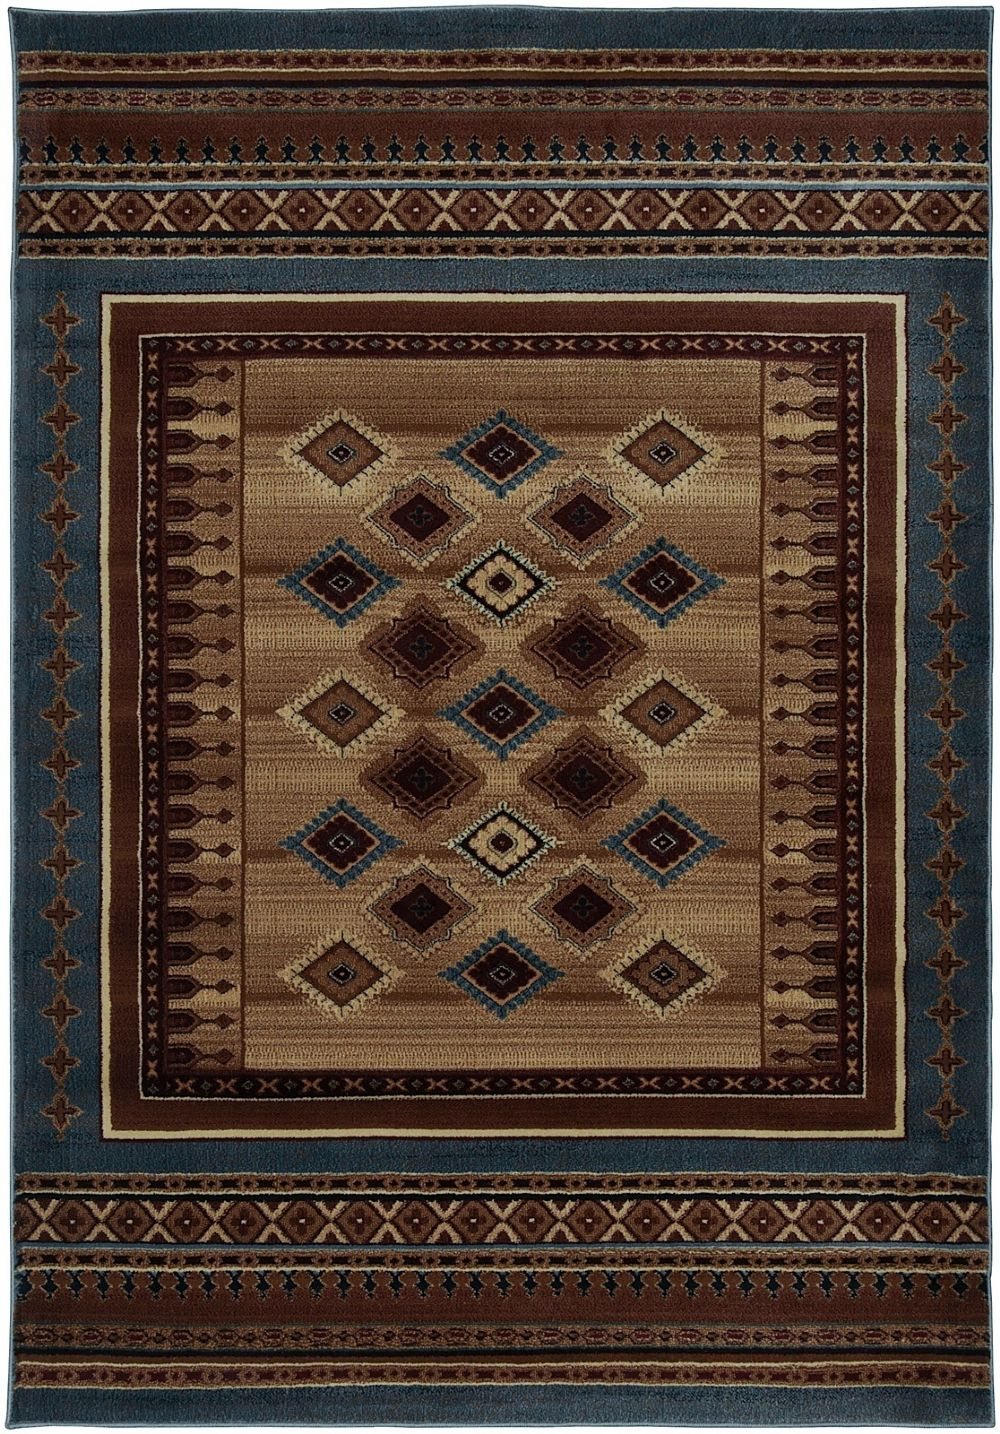 Rizzy Rugs Bellevue Southwestern Lodge Area Rug Collection